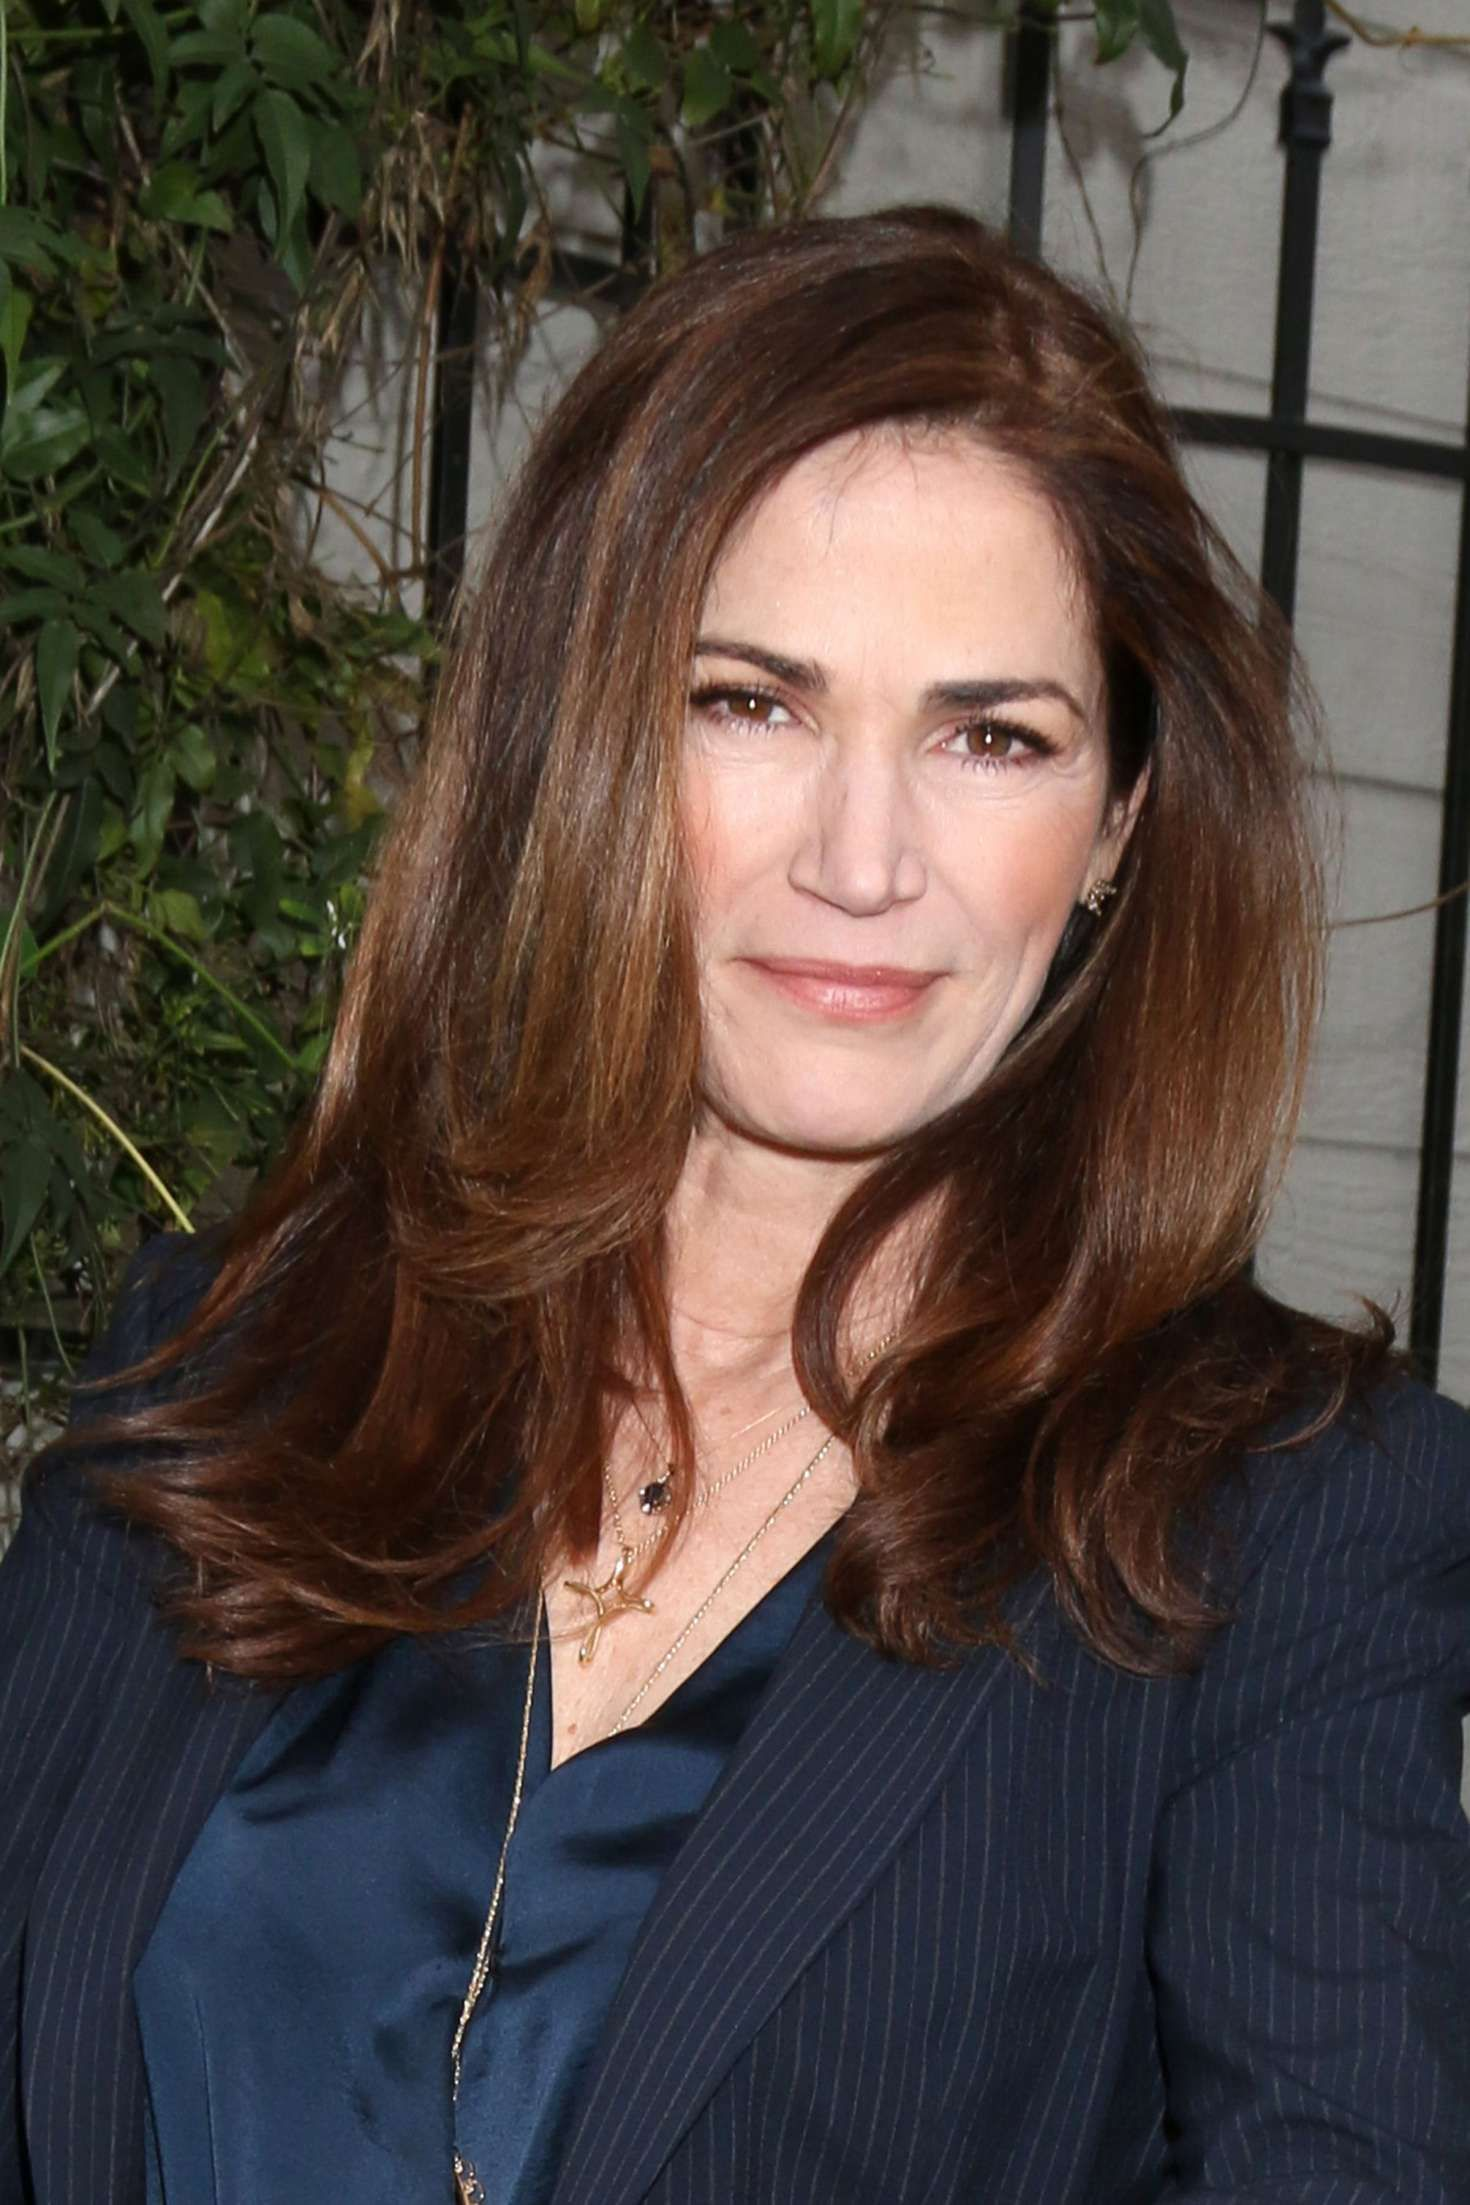 Kim Delaney nude (87 photo), Topless, Sideboobs, Boobs, braless 2018